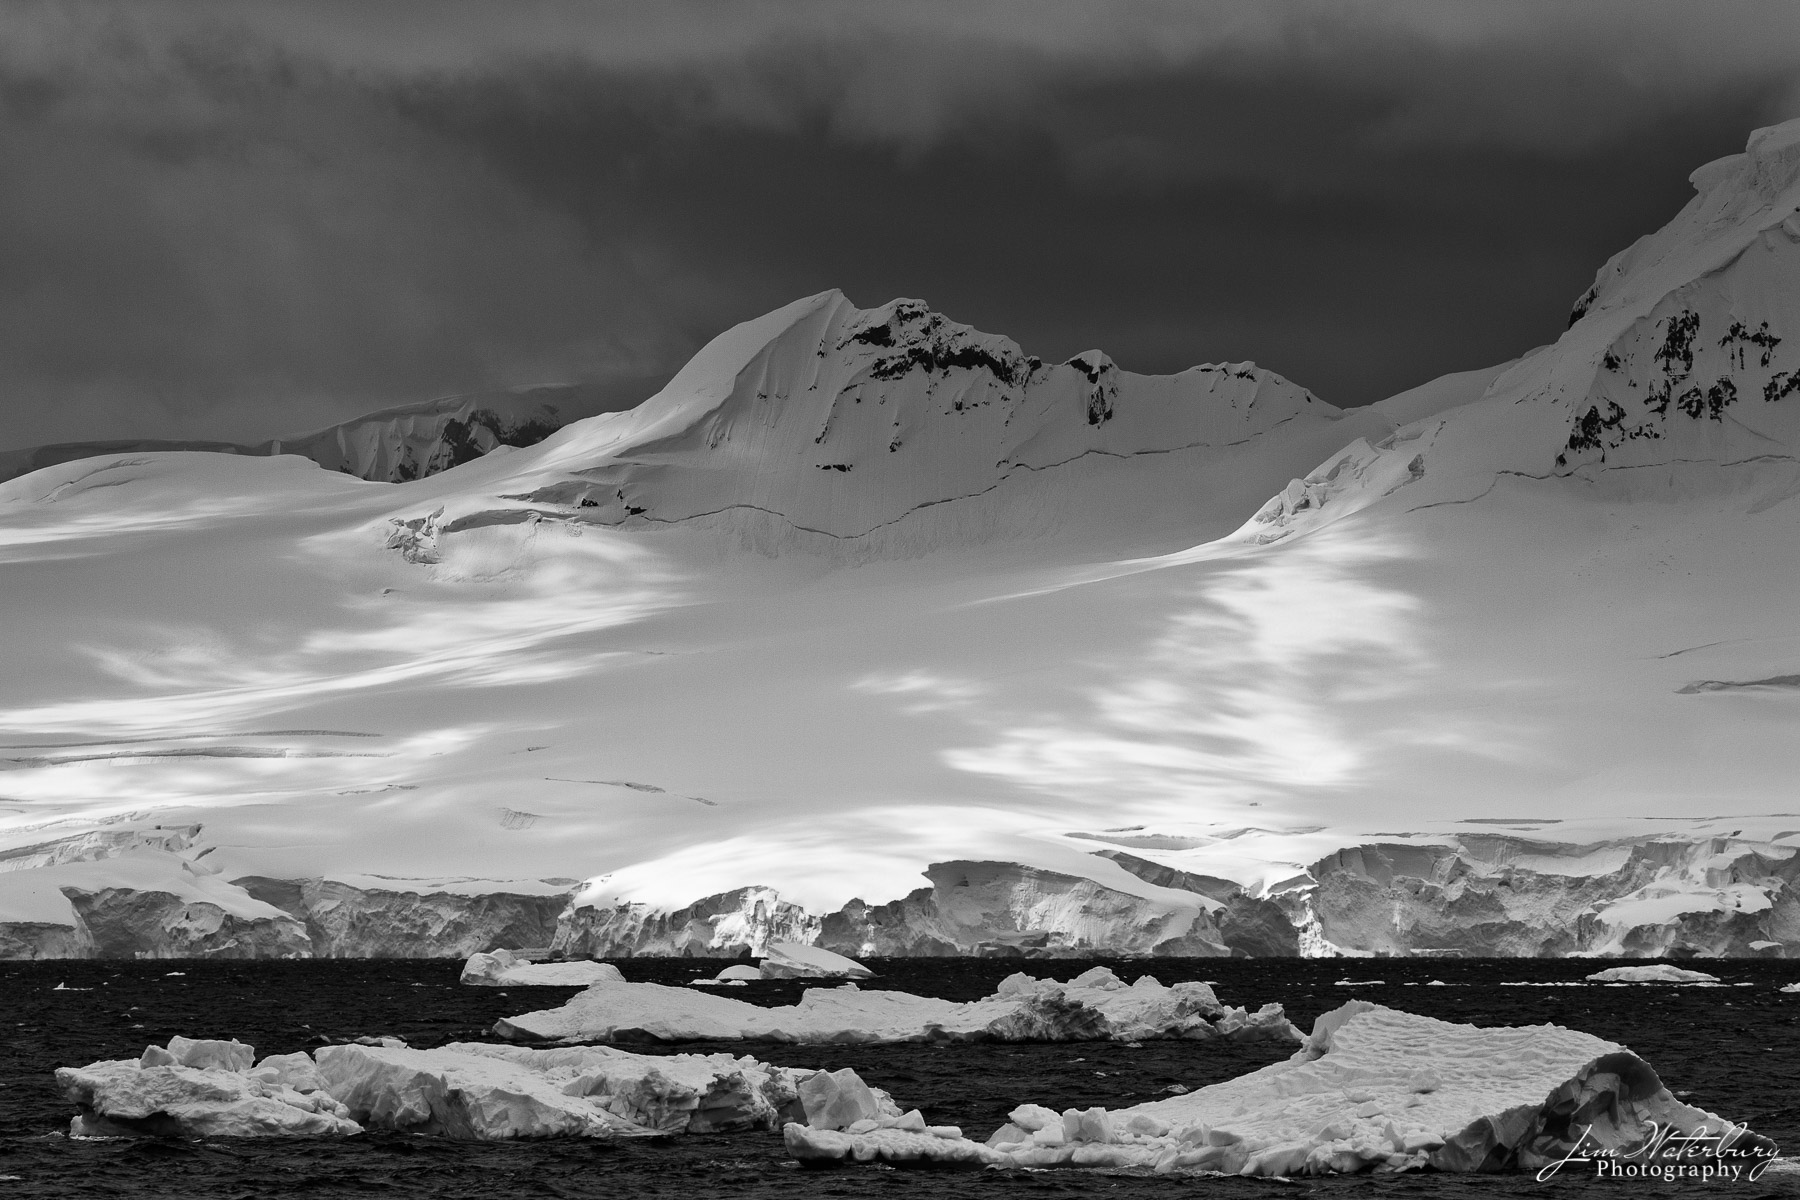 Antarctica, snow, shadows, mountains, B&W, photo